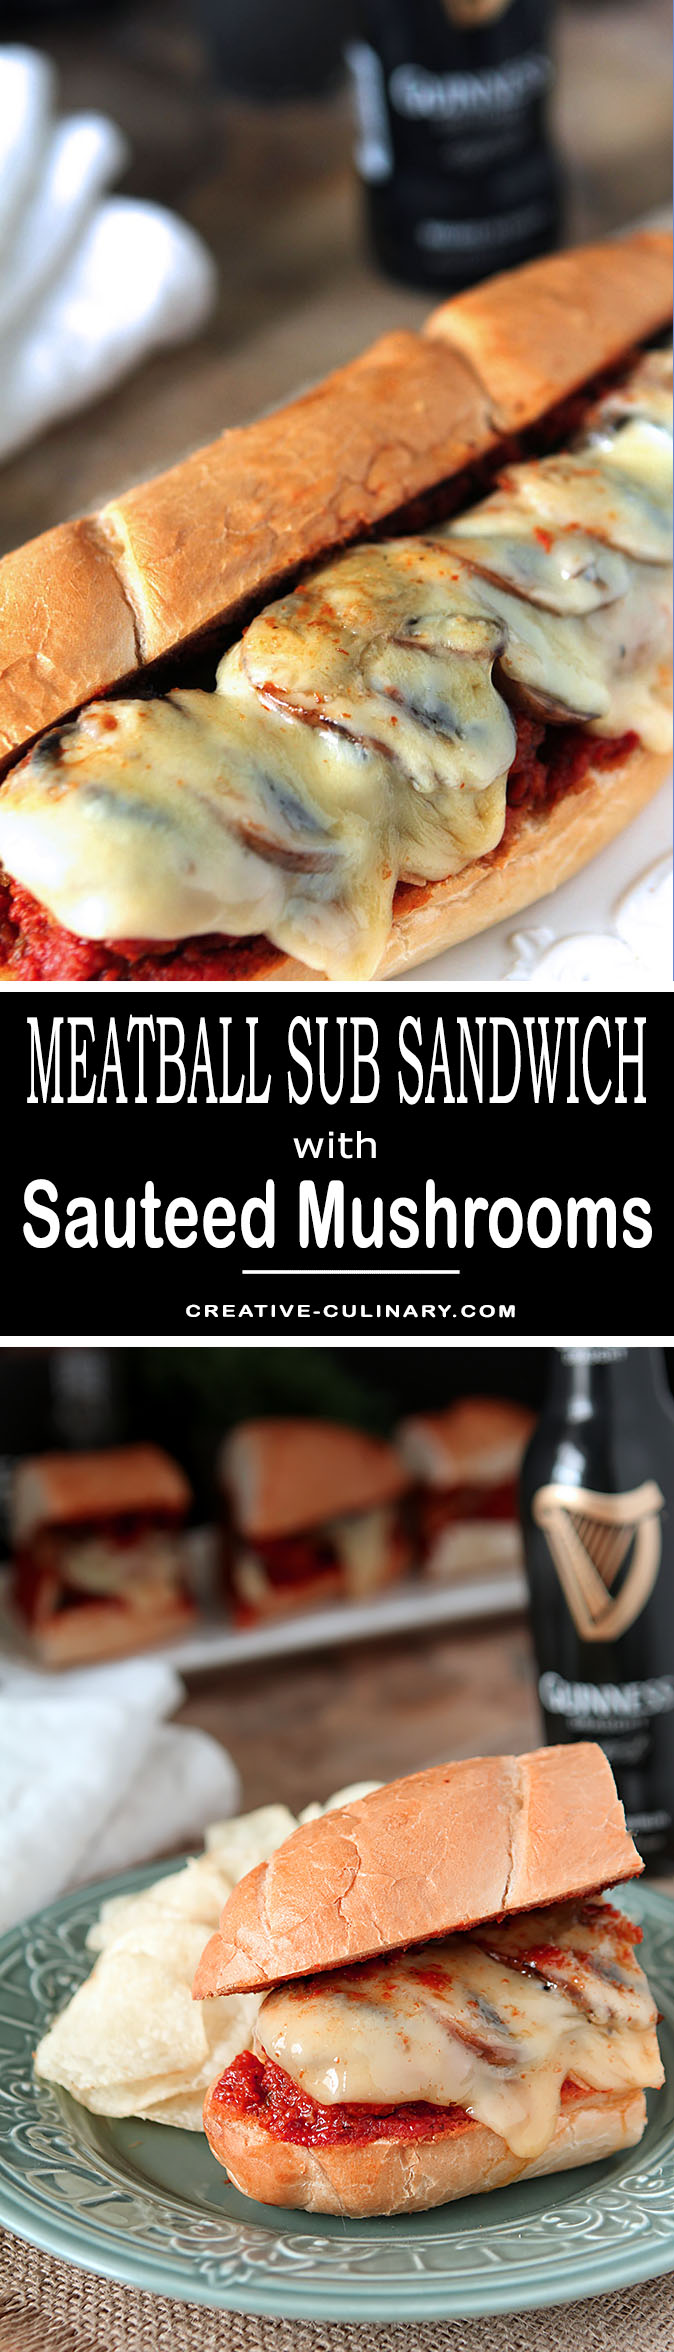 Whether it's for the big game, company or a family event, these Meatball Sub Sandwiches for a Crowd will be welcome by all!